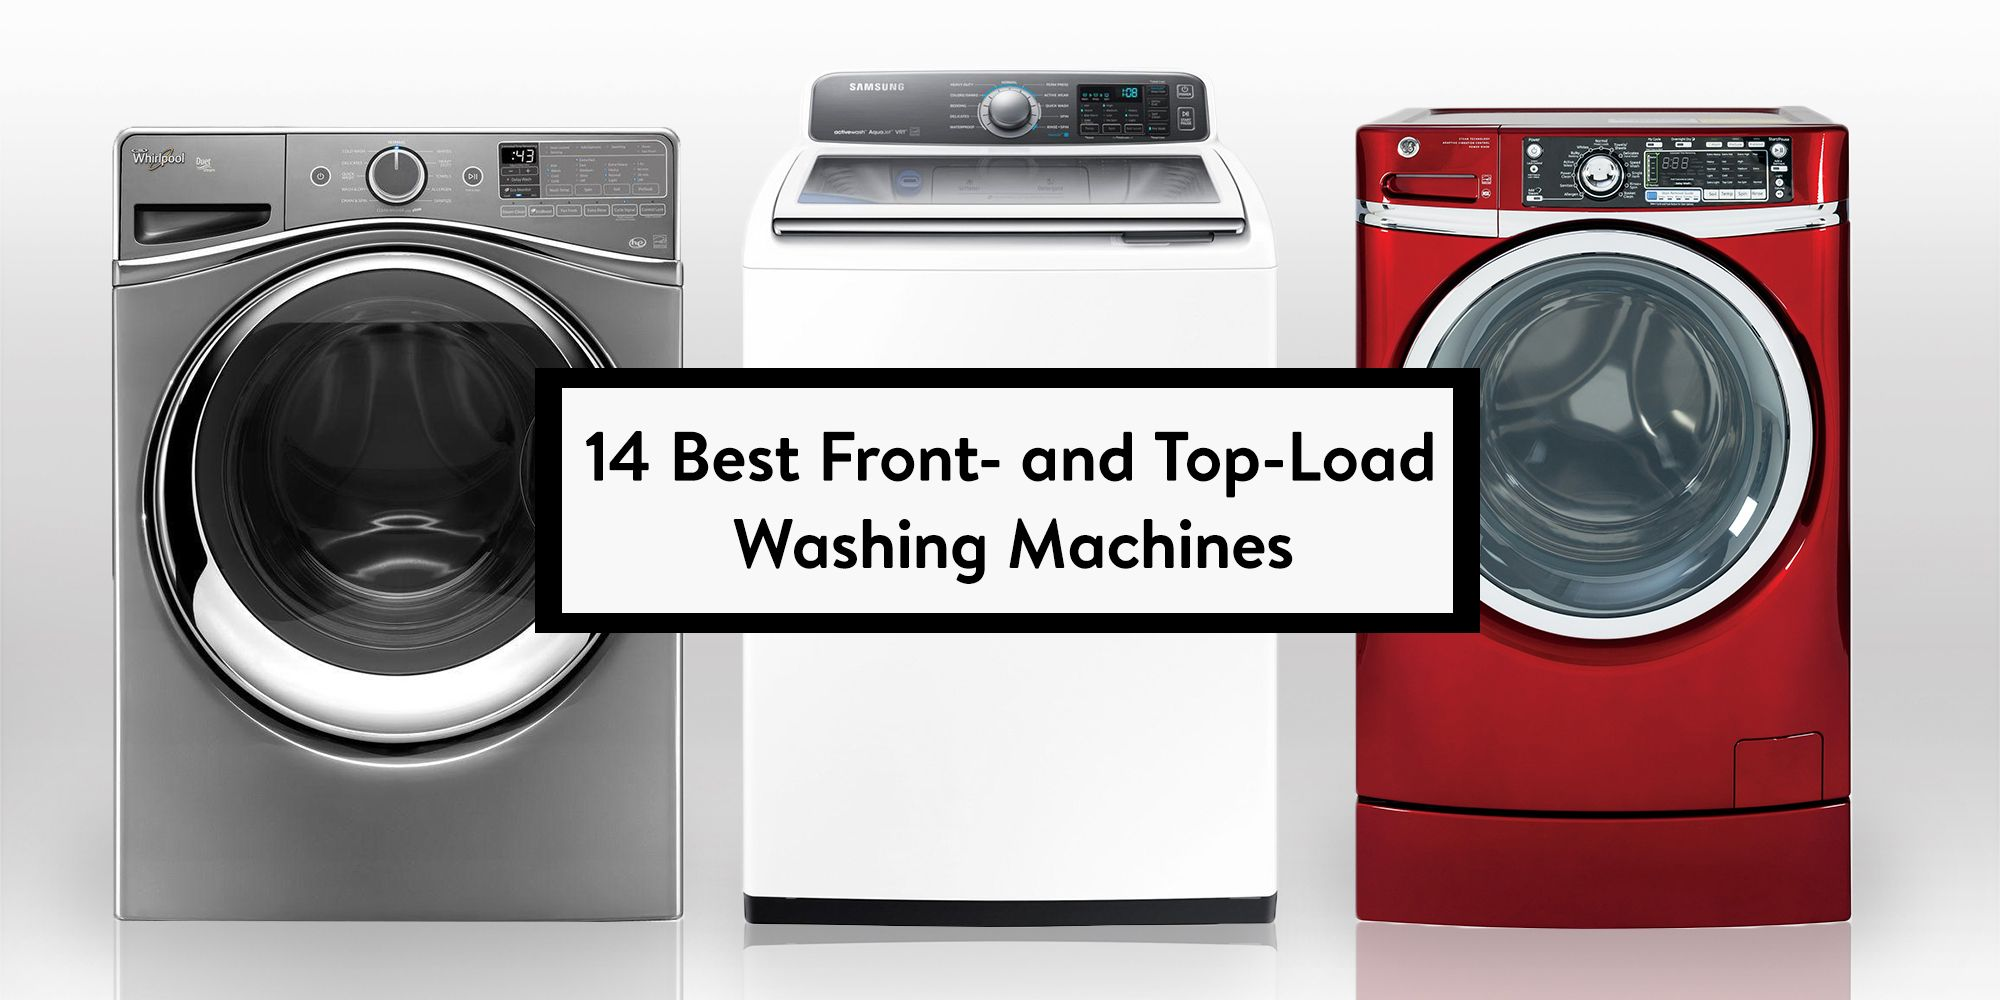 Samsung Addwash Front Load Washer Best Home And Kitchen